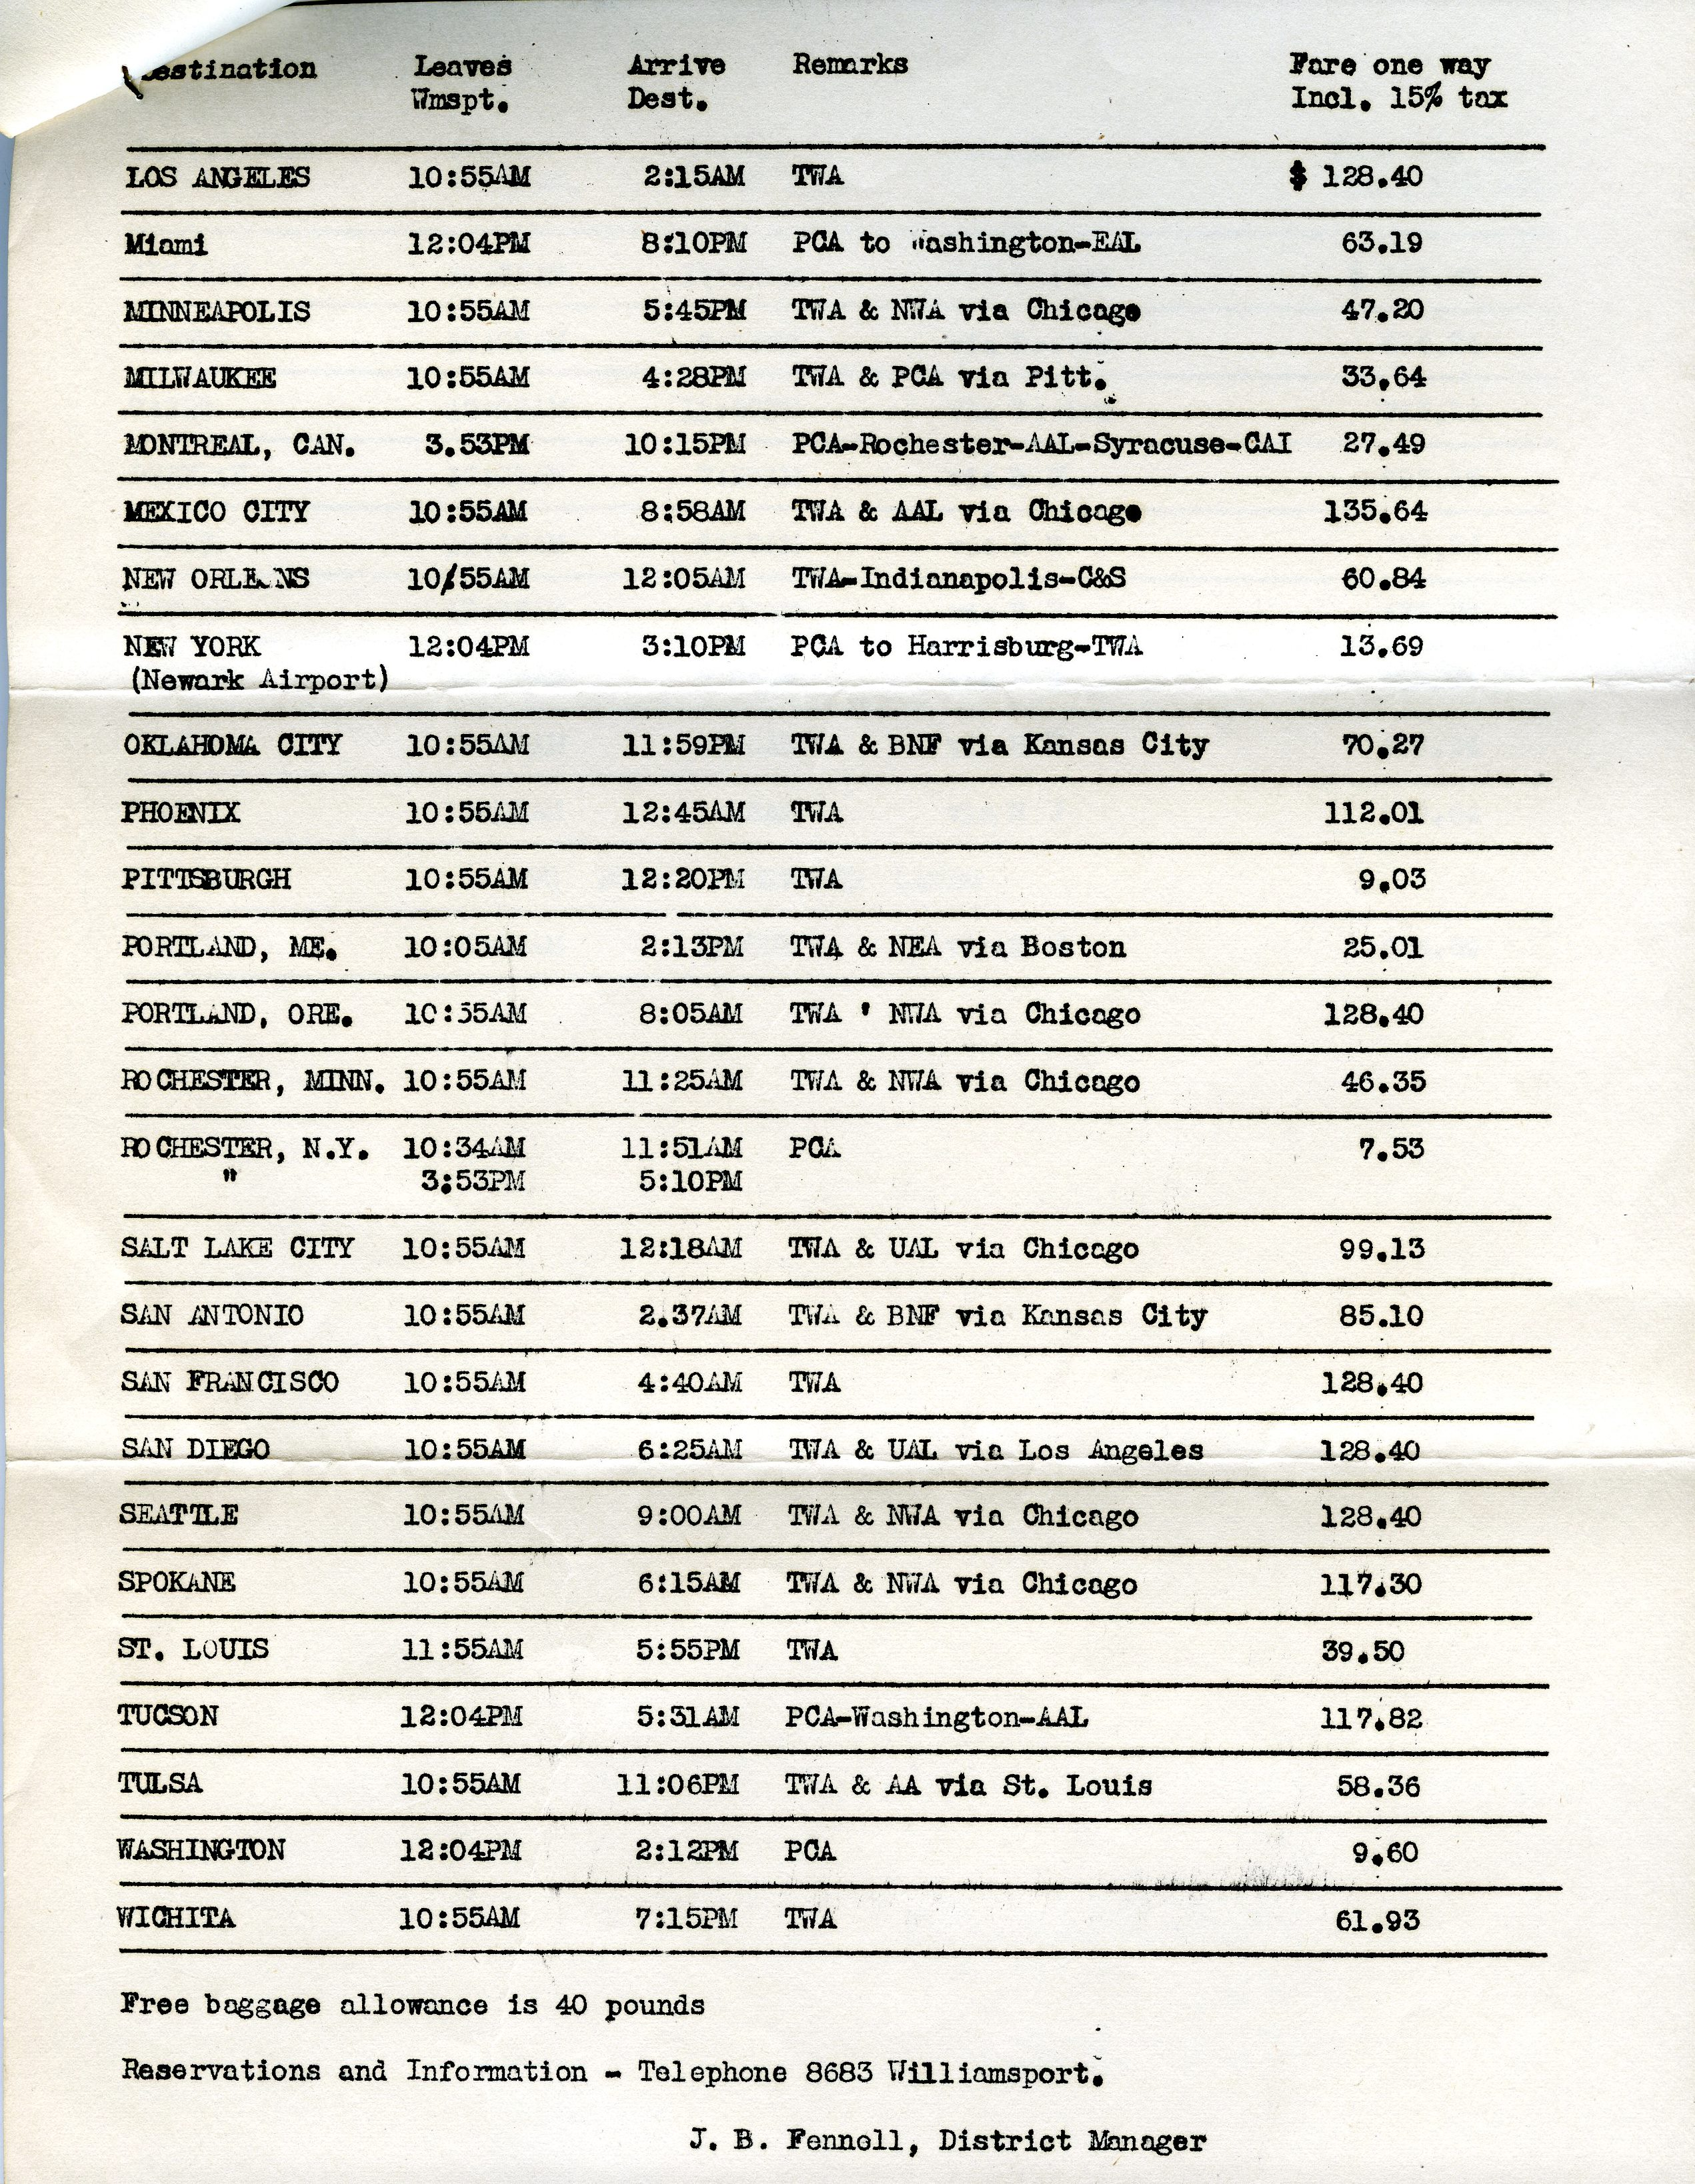 KIPT Airport schedule